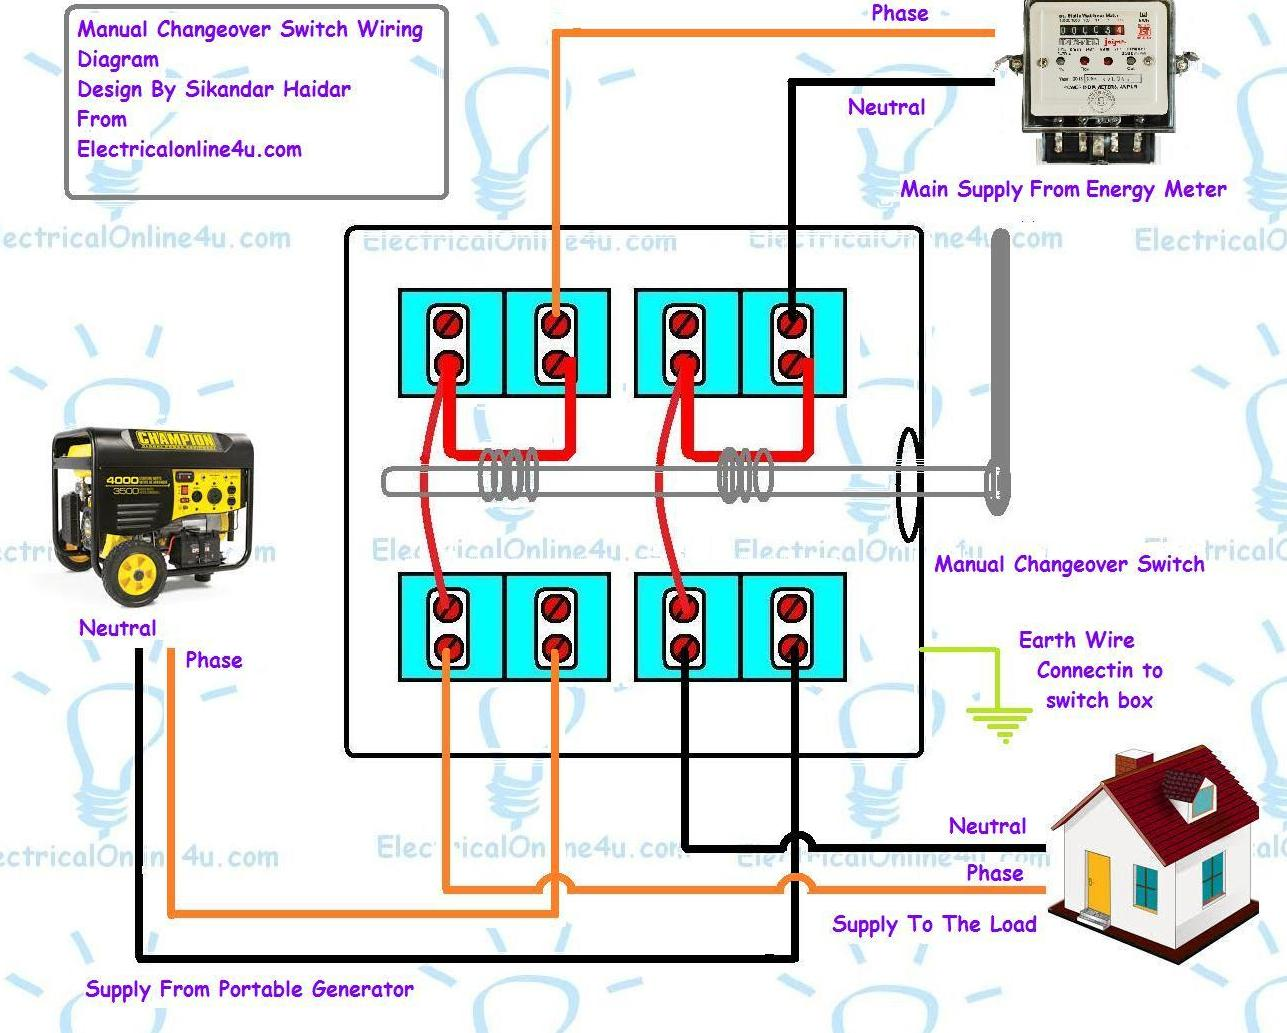 diagram] olympian generator wiring diagram full version hd quality wiring  diagram - uxdiagrammatics.k-danse.fr  k-danse.fr